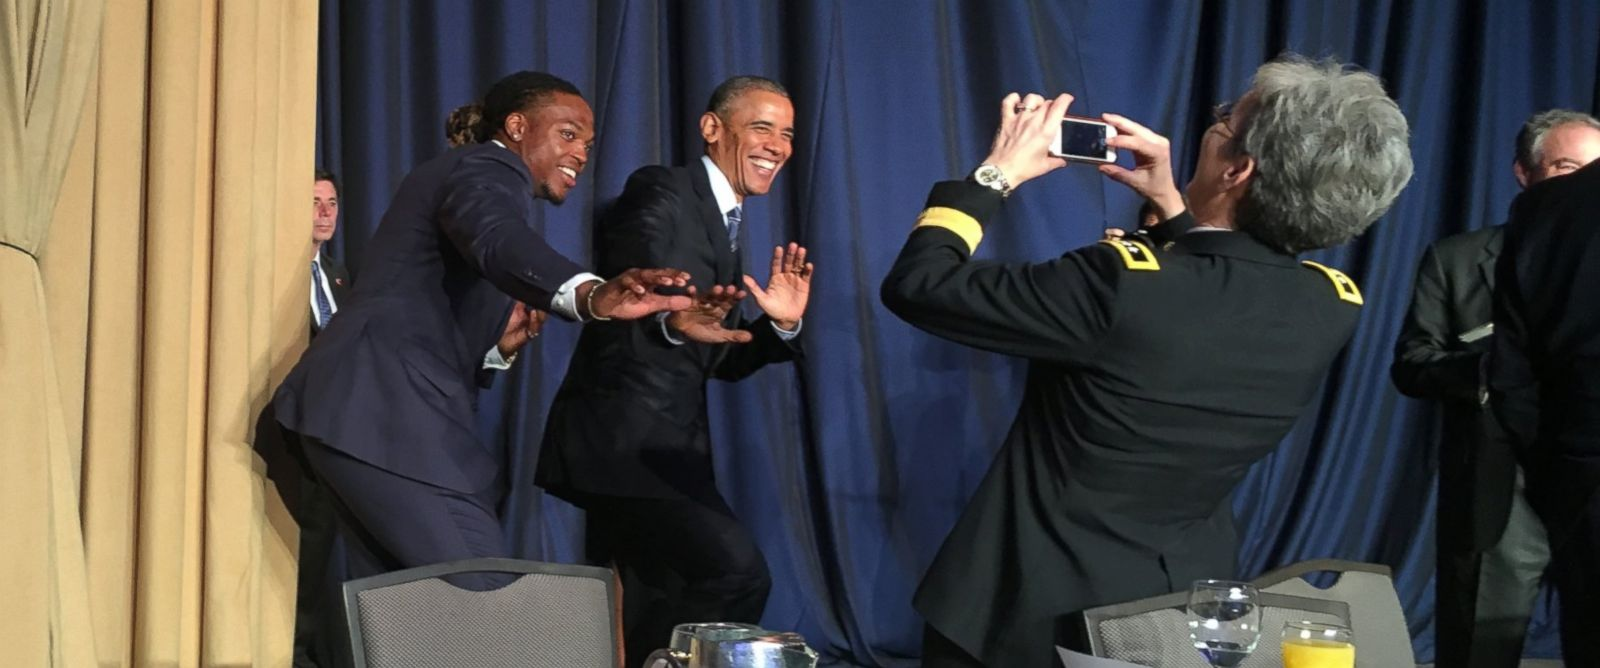 PHOTO: President Obama poses for a photo with Heisman trophy winner Derrick Henry of the University of Alabama at the National Prayer Breakfast in Washington on Thursday. on February 4,2016.